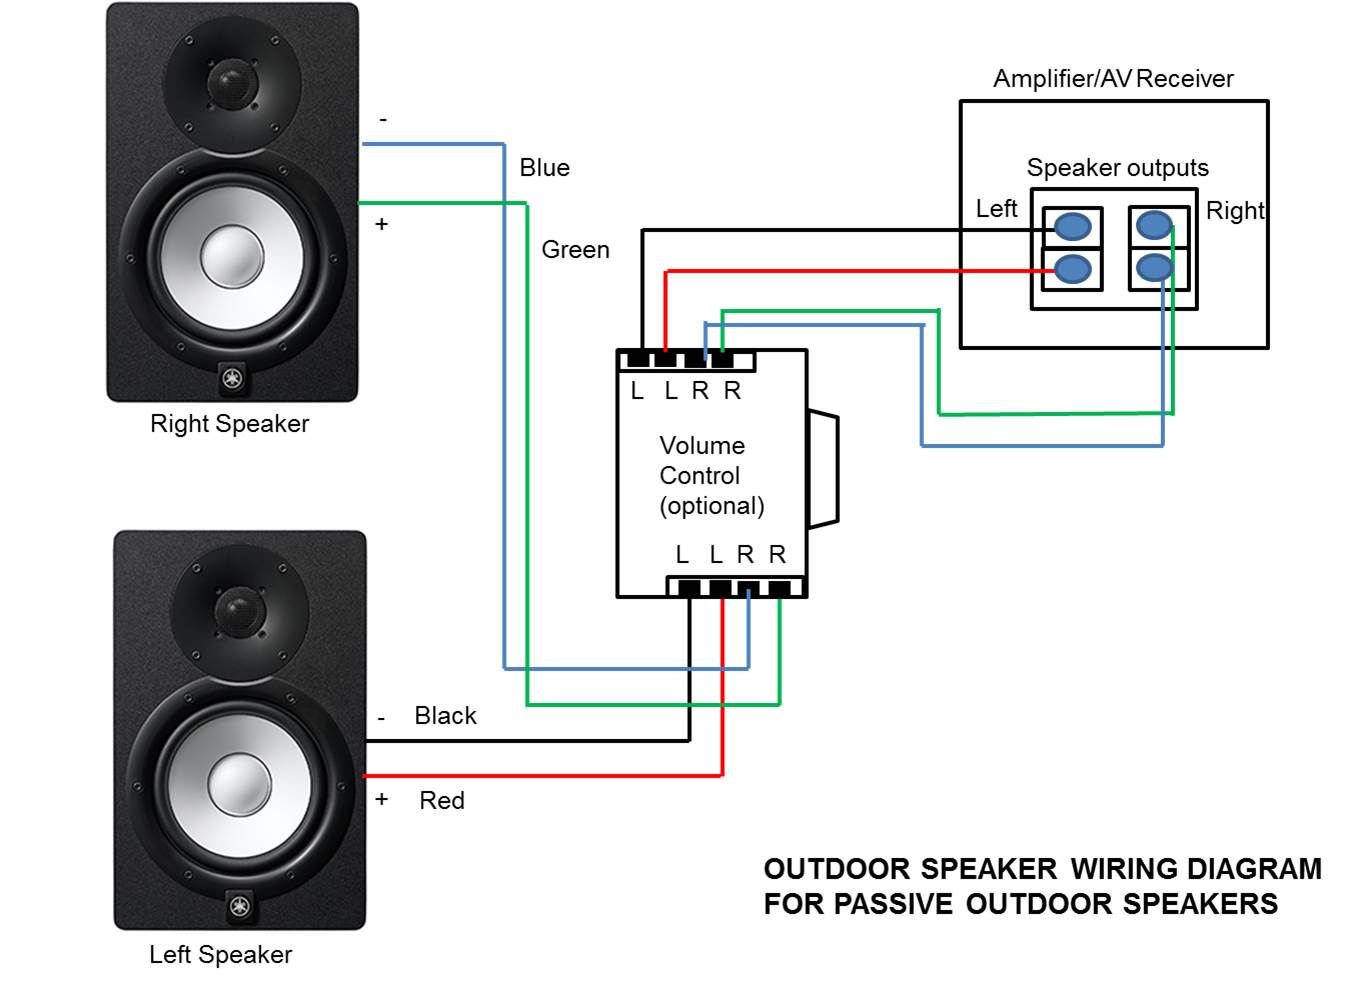 Outdoor Speaker Wiring Diagram best outdoor speakers in 2017 for gardens, patios and backyards outdoor speaker wiring diagram at reclaimingppi.co